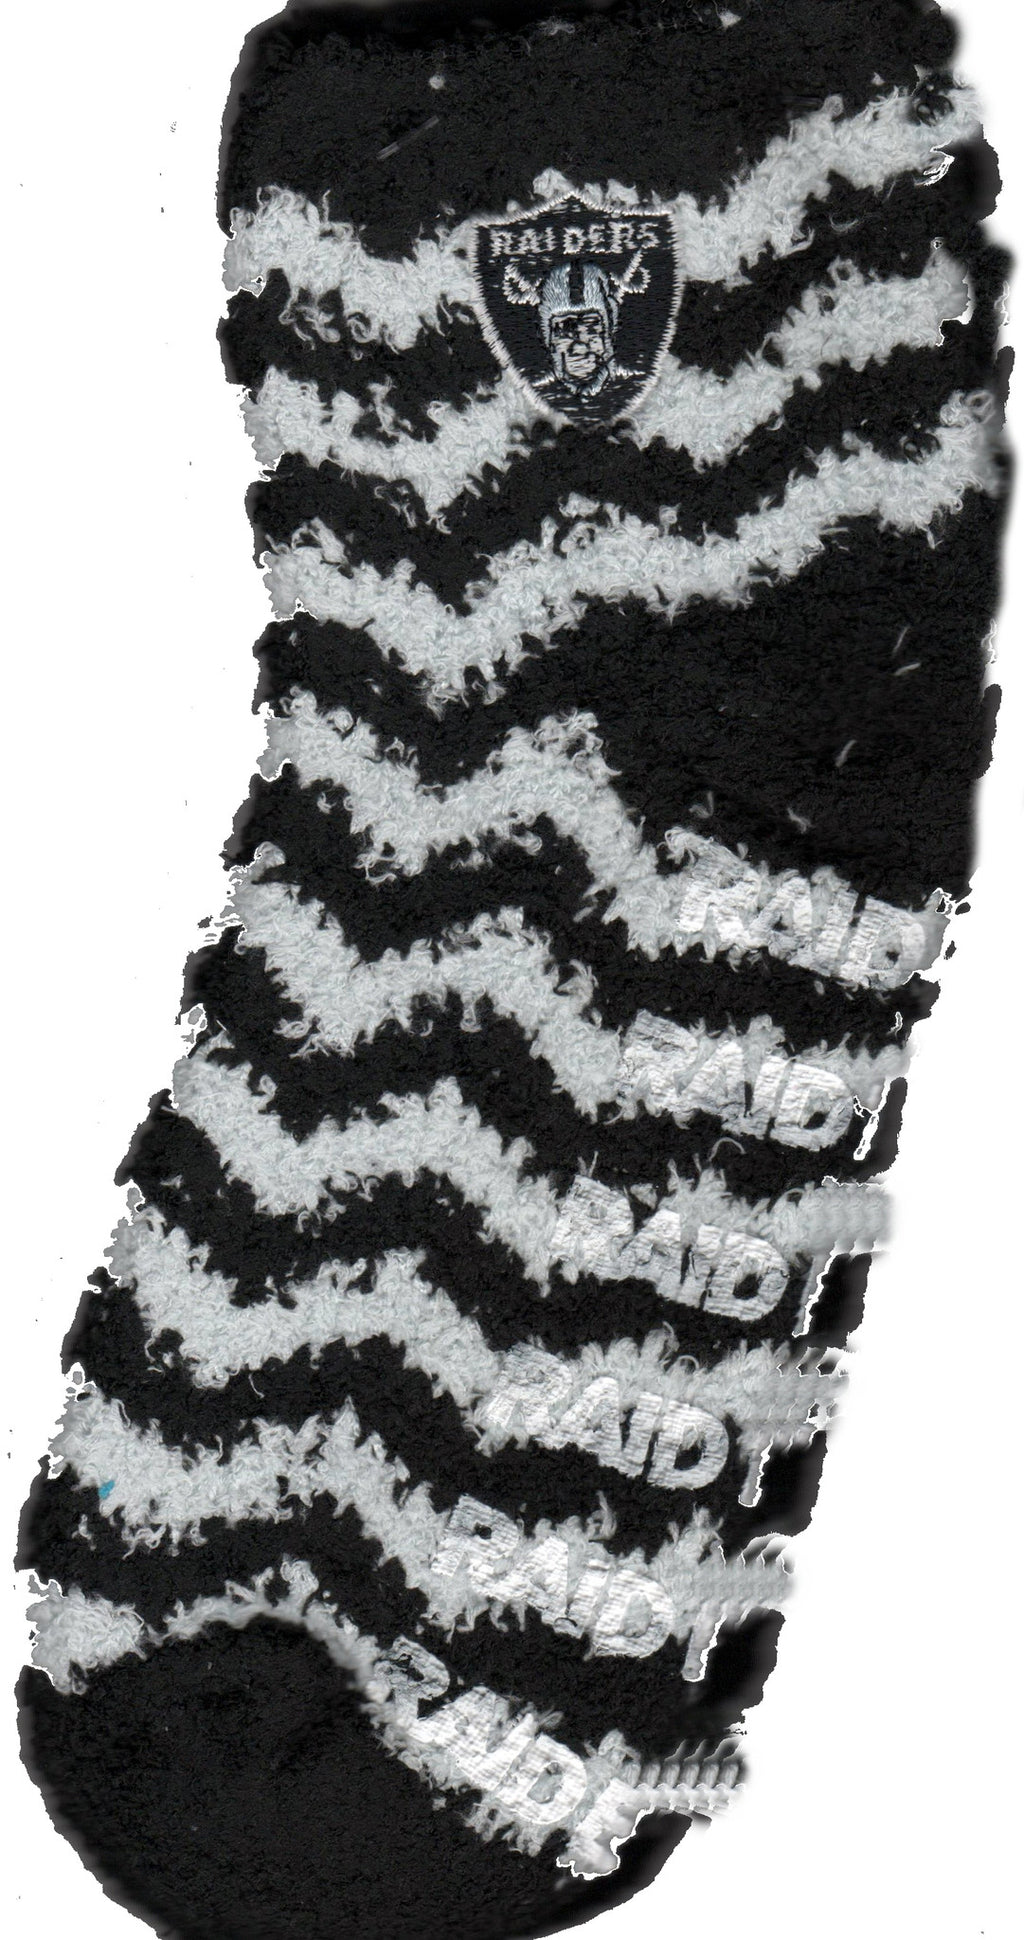 The Silver and Black of the Oakland Raiders are in Chevron Lines over this Sleepsoft  Non-Skid Sock. Raiders is in White Rubber heat sealed to the bottom for the Non-Slid. The Raiders Logo is attached to both Socks so you can see it on the outside.